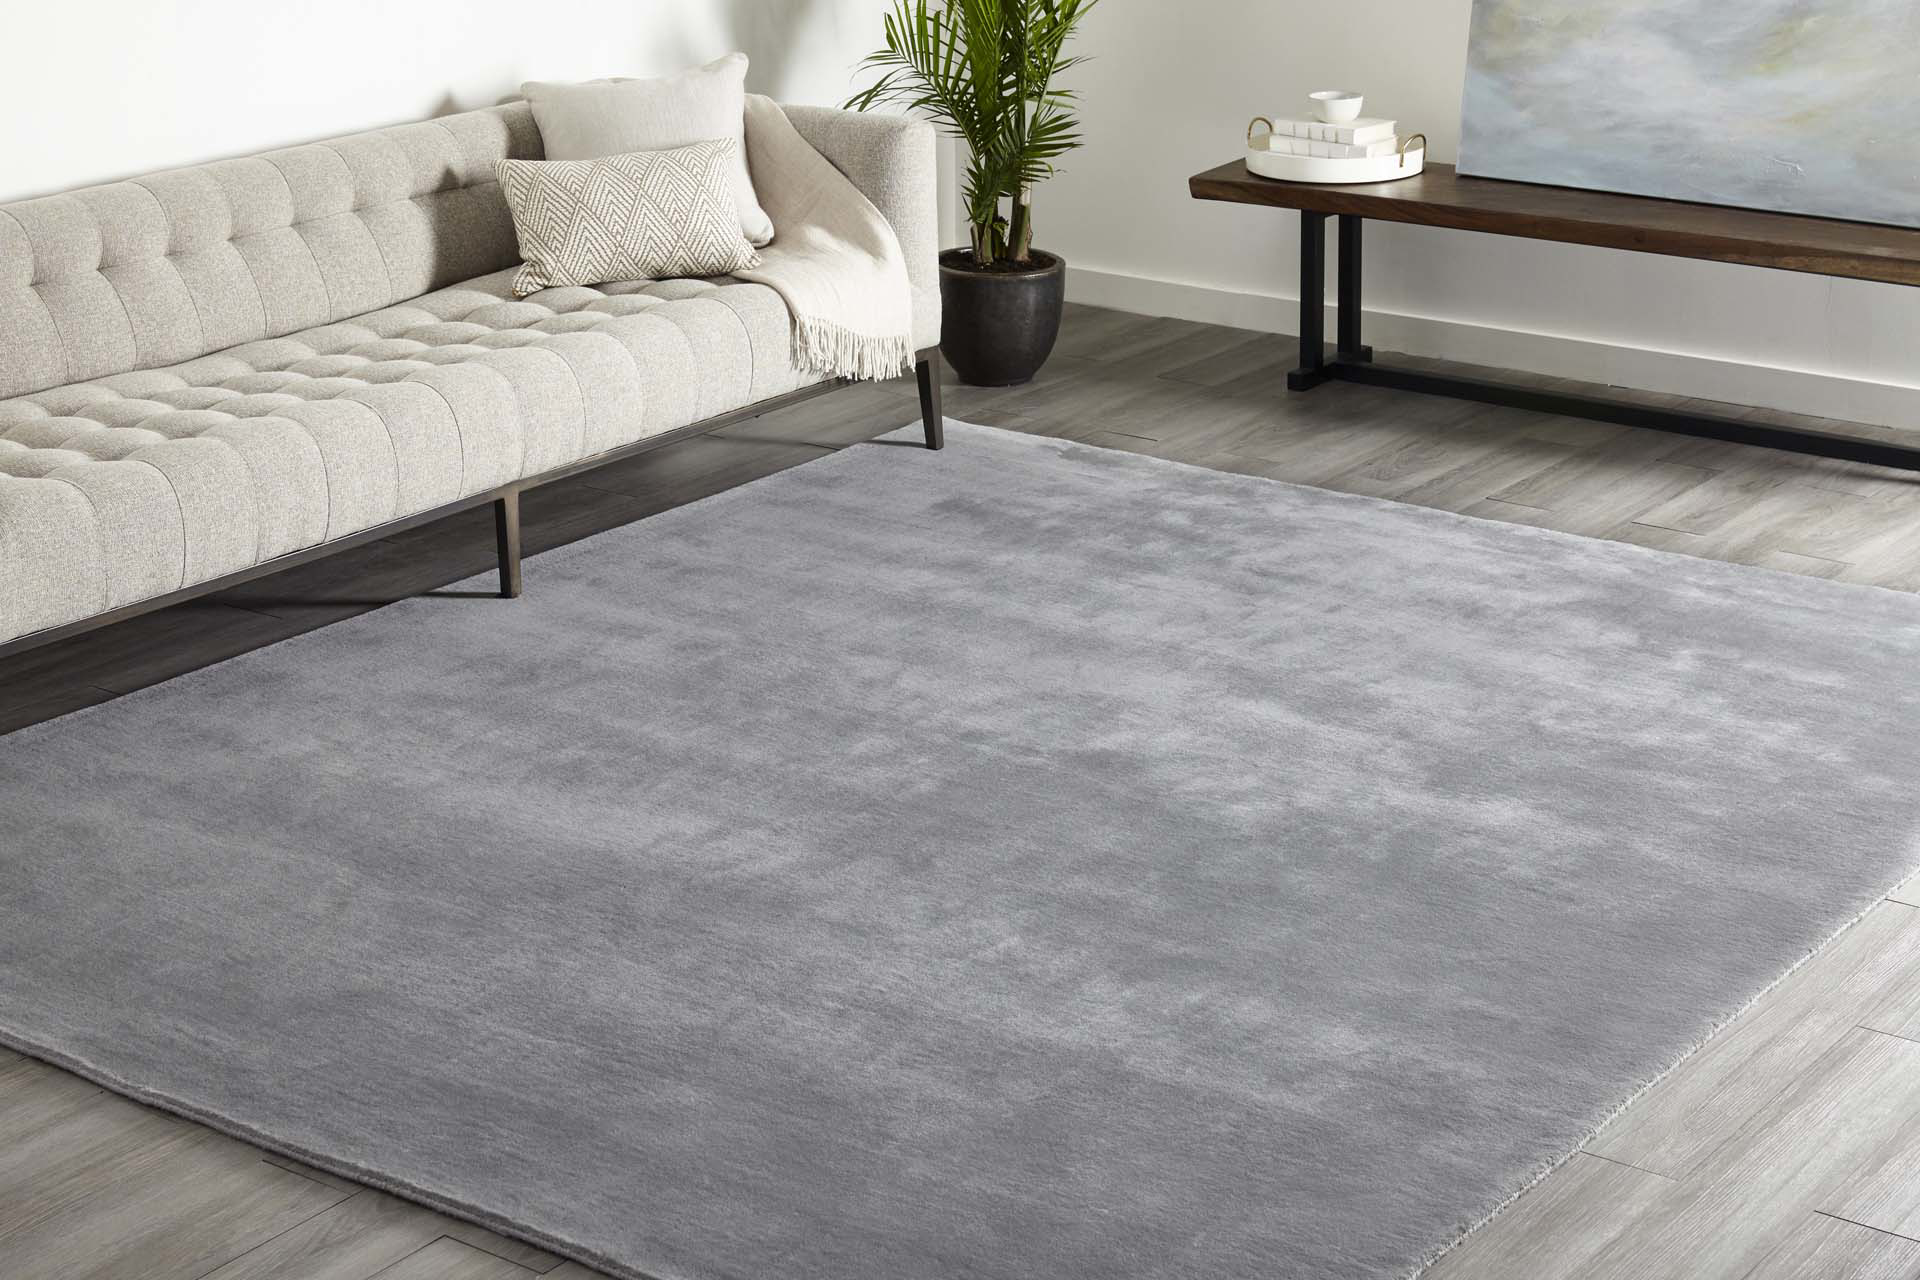 Willow Handmade Area Rug The Dump Luxe Furniture Outlet